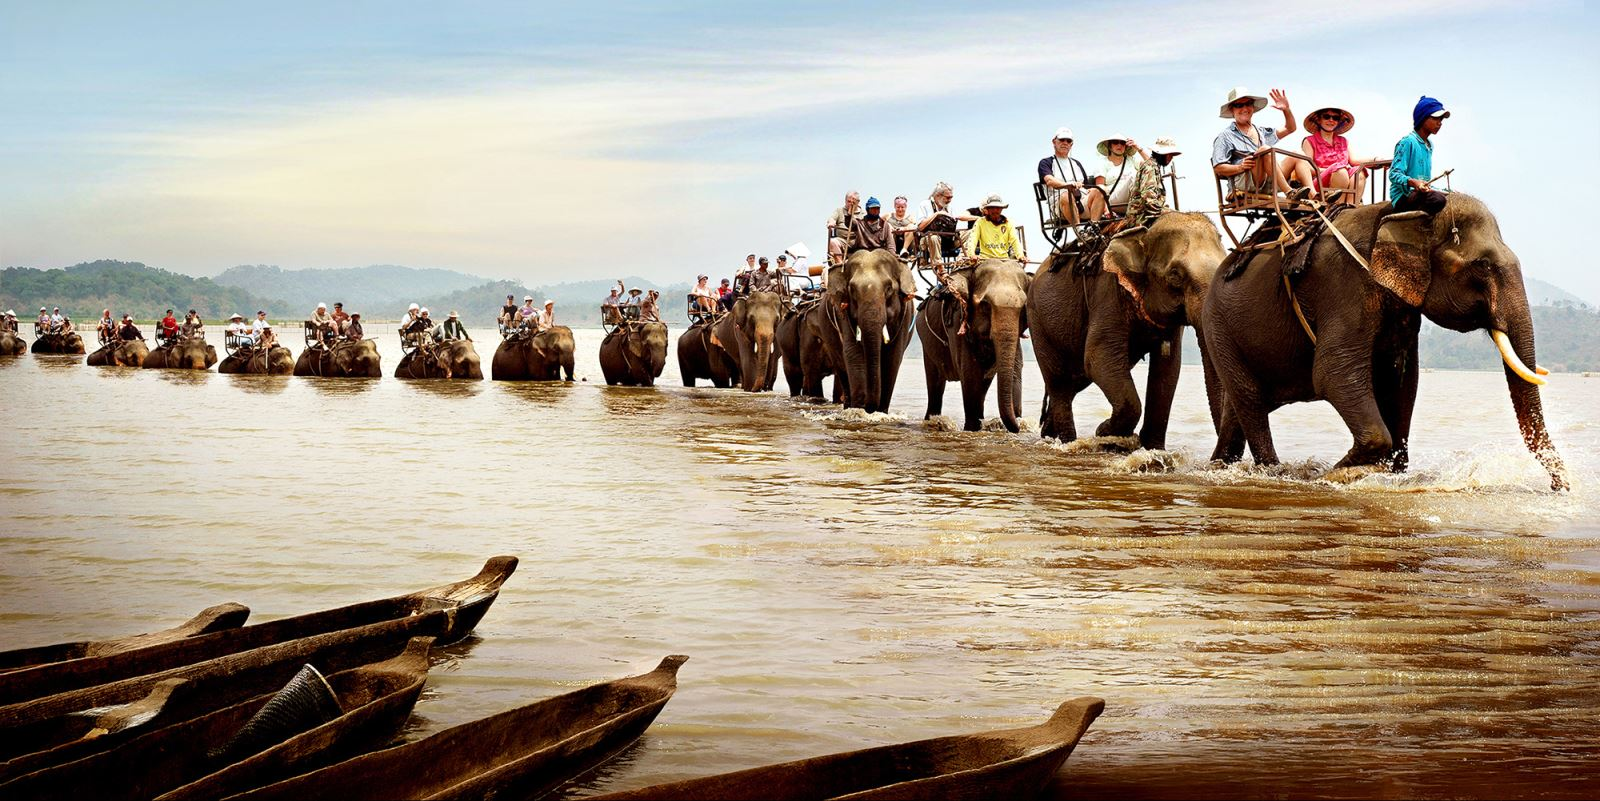 Elephant ride in Buon Me Thuot  Vietnam